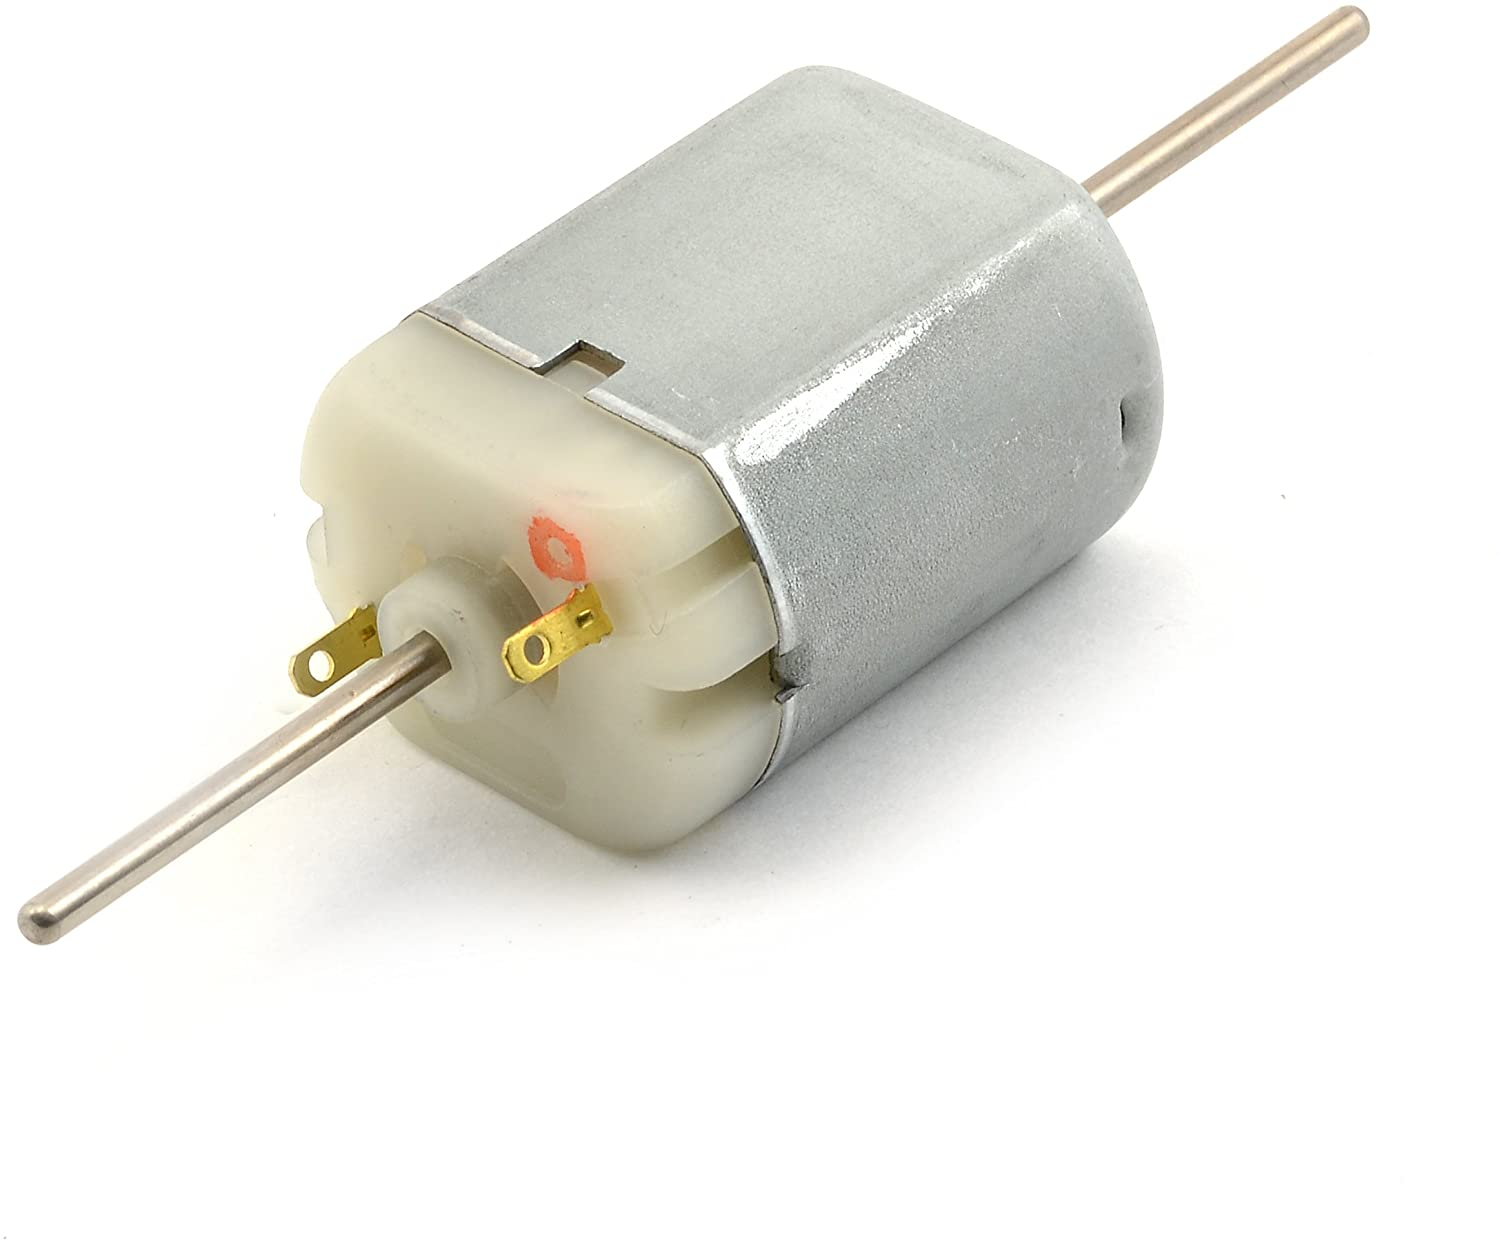 Micro-Mark Flat Can Motor, Style 2430, 12v